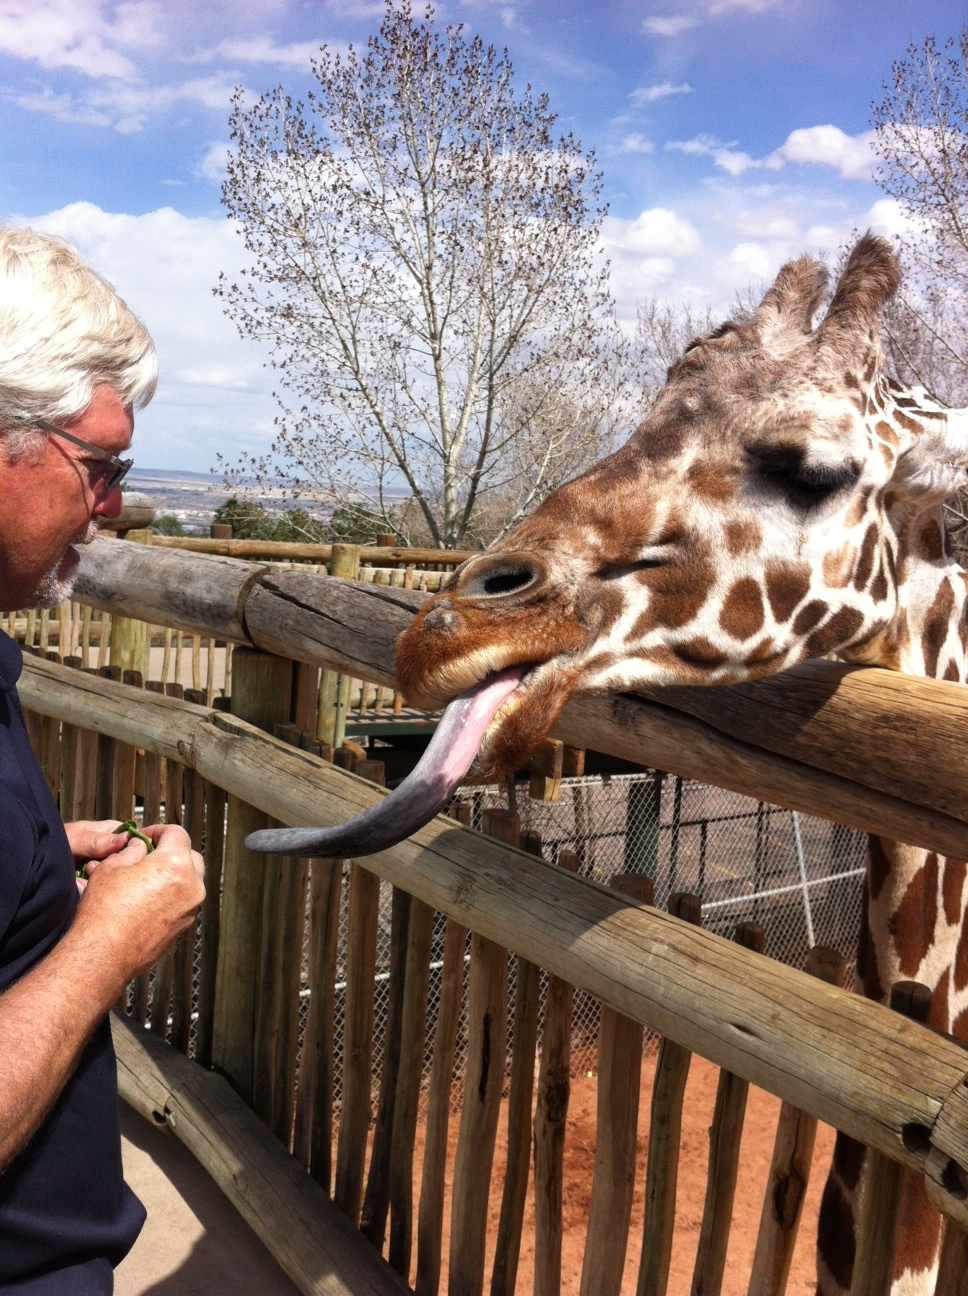 Perhaps the quirkiest experience I've had in a long time was feeding the giraffes at the Cheyenne Mountain Zoo. Barely get in the gate, visitors are welcomed by several hungry giraffes with their long tongues sticking out waiting to be fed. Two dollars gets you a handful of lettuce.